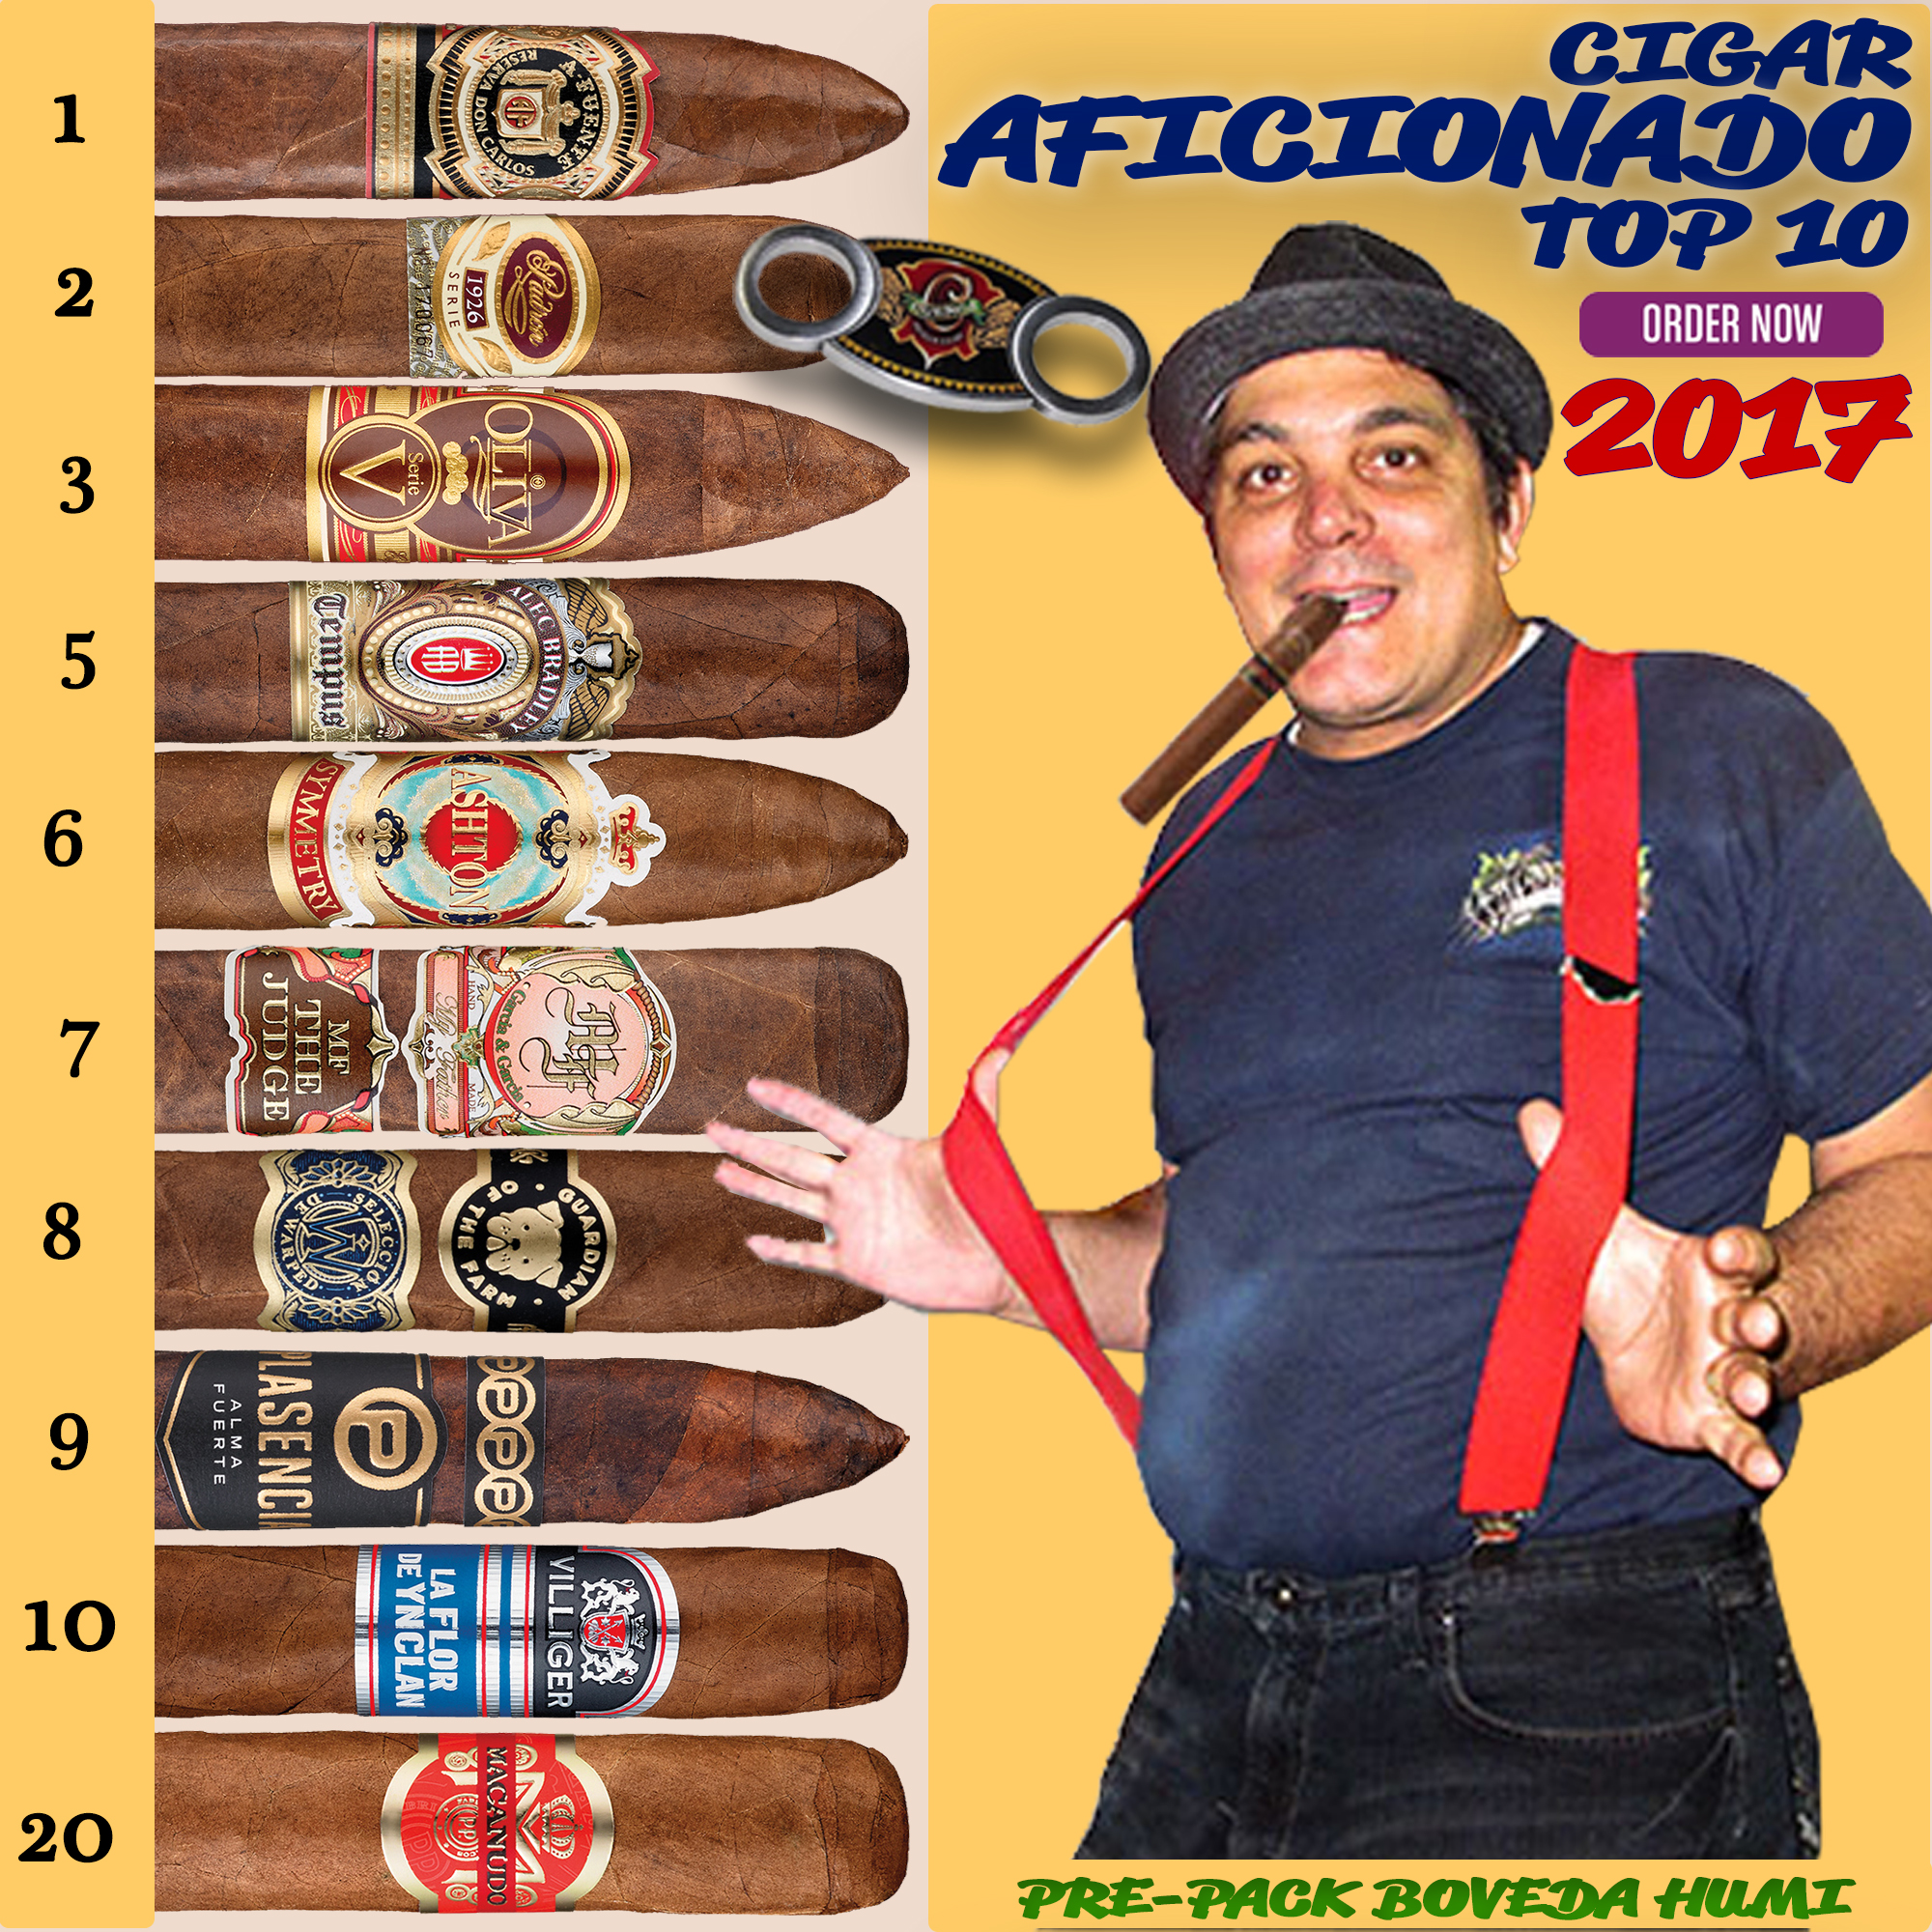 2017 TOP 10 CIGARS BY CIGAR AFICIONADO